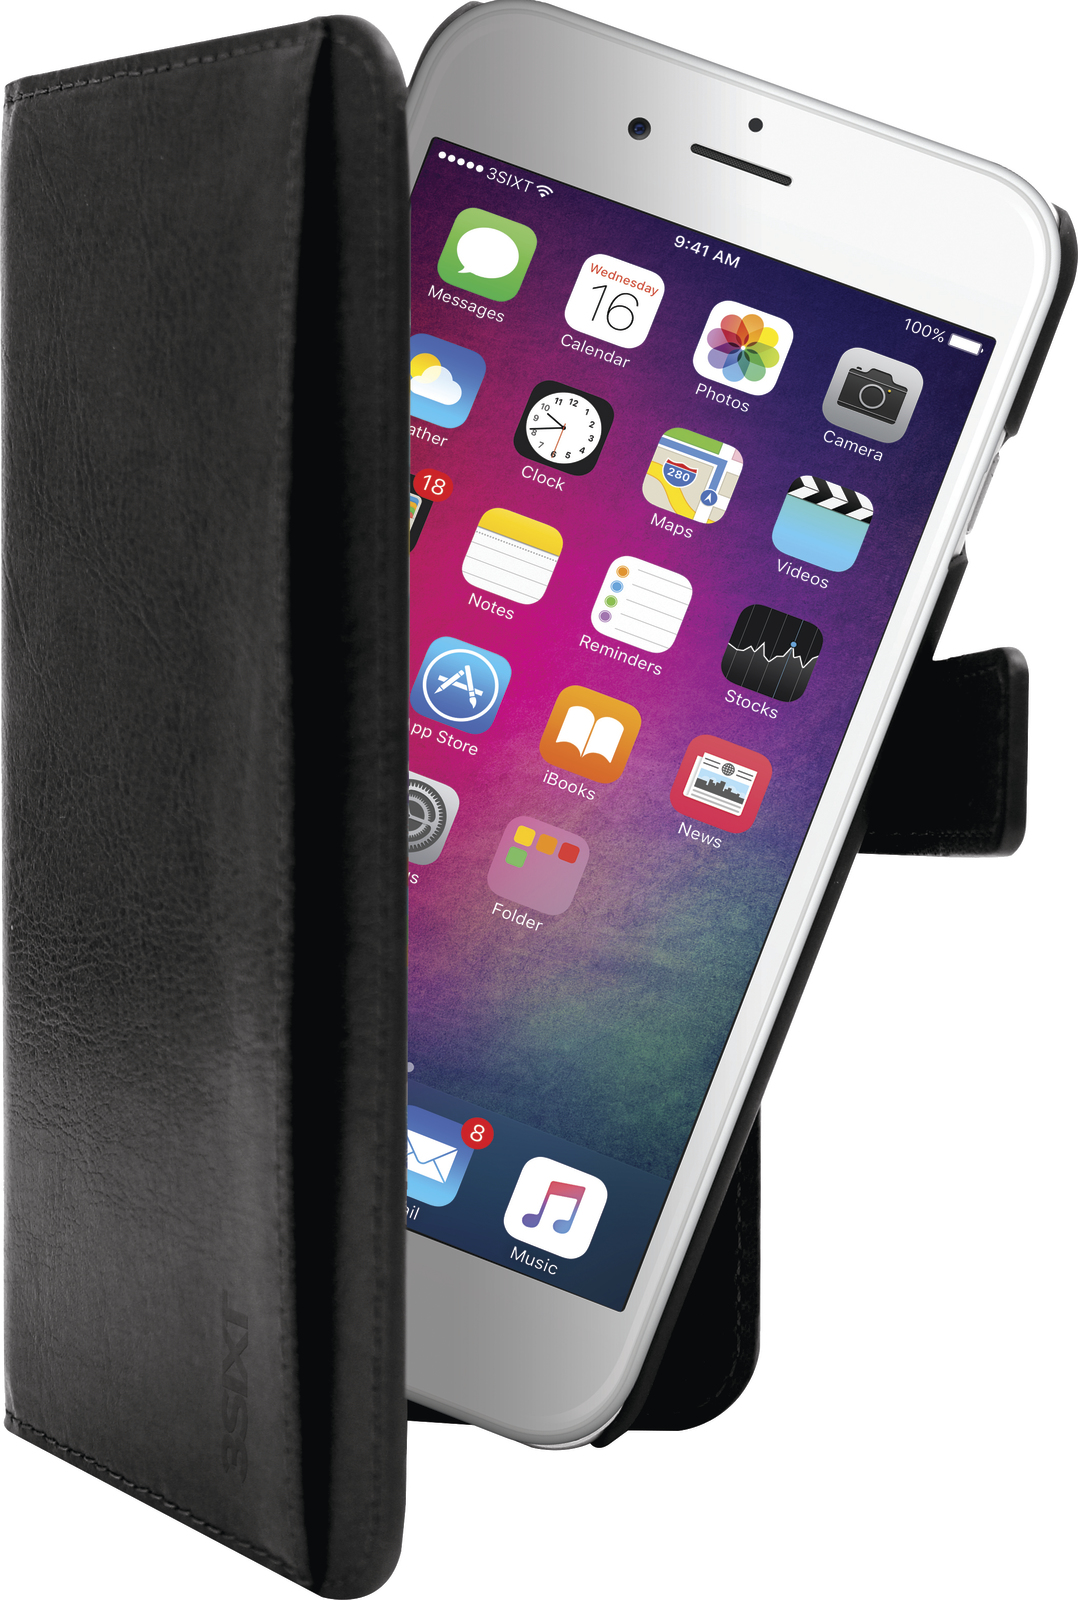 3SIXT Neo Case for iPhone 6/6S/7 & 8 - Black image